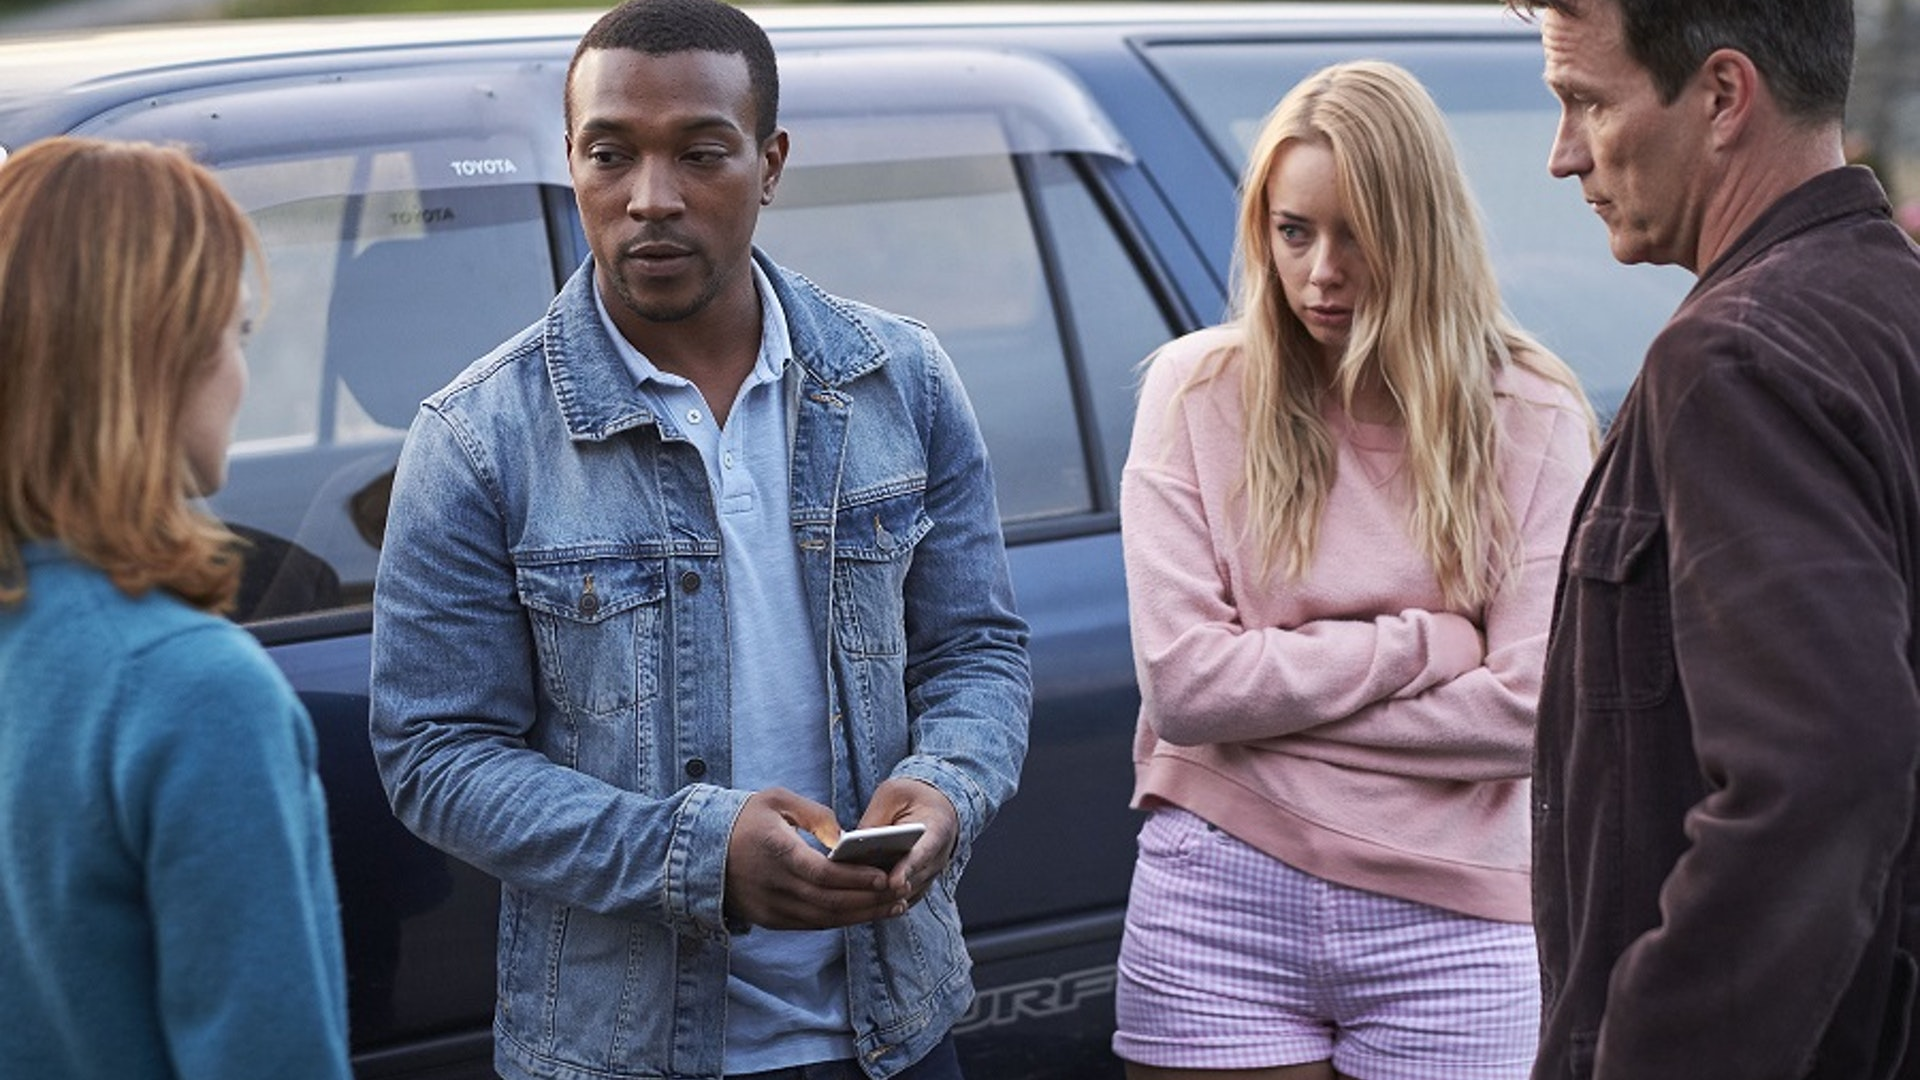 SAFE_HOUSE_EP1_STEPHEN MOYER as Tom Brook, ZOE TAPPER as Sam, SACHA PARKINSON as Dani and ASHLEY WALTERS as John.